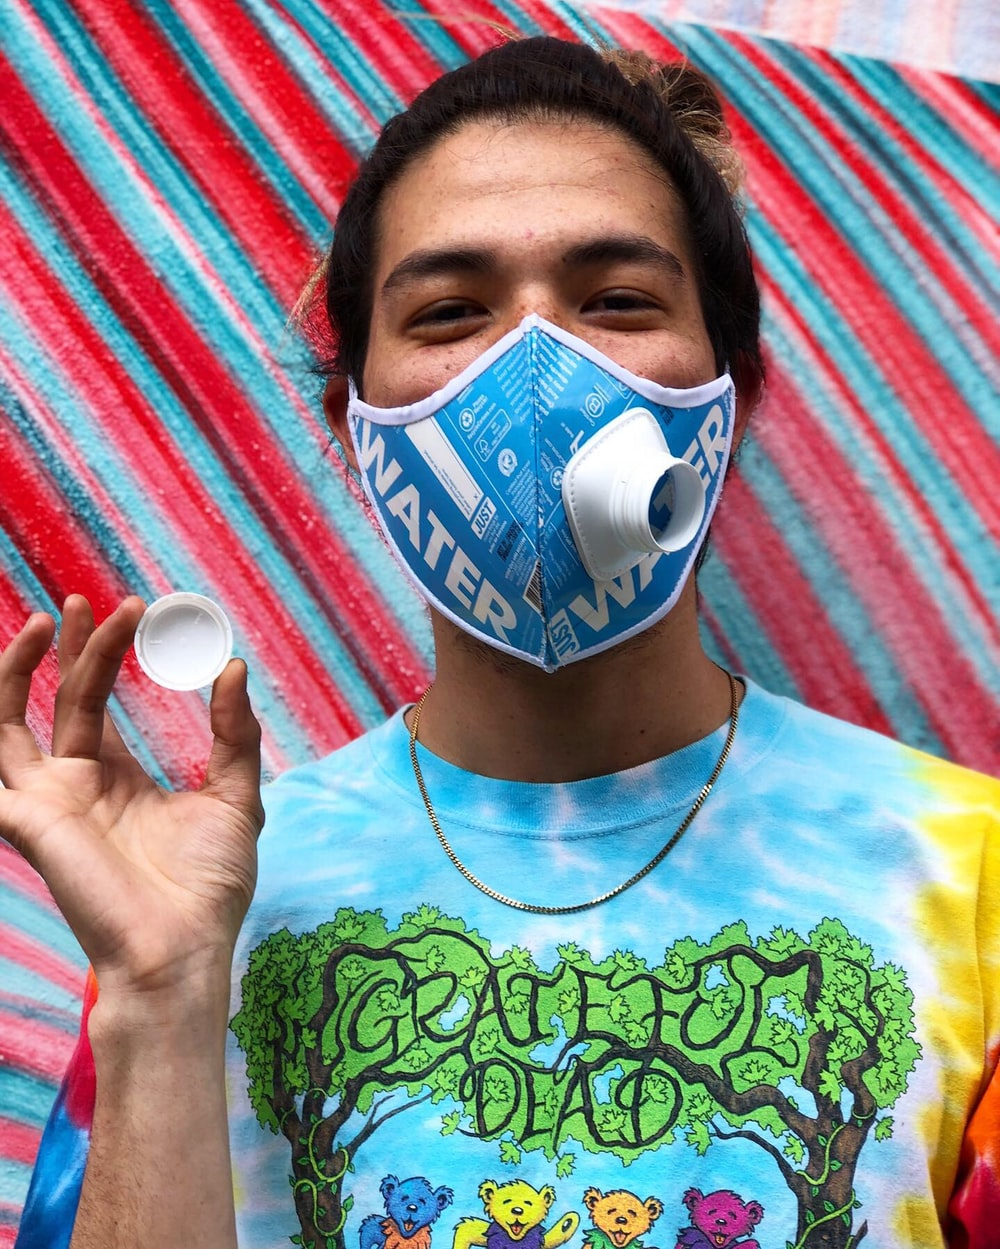 boy in green crew neck shirt with blue mask